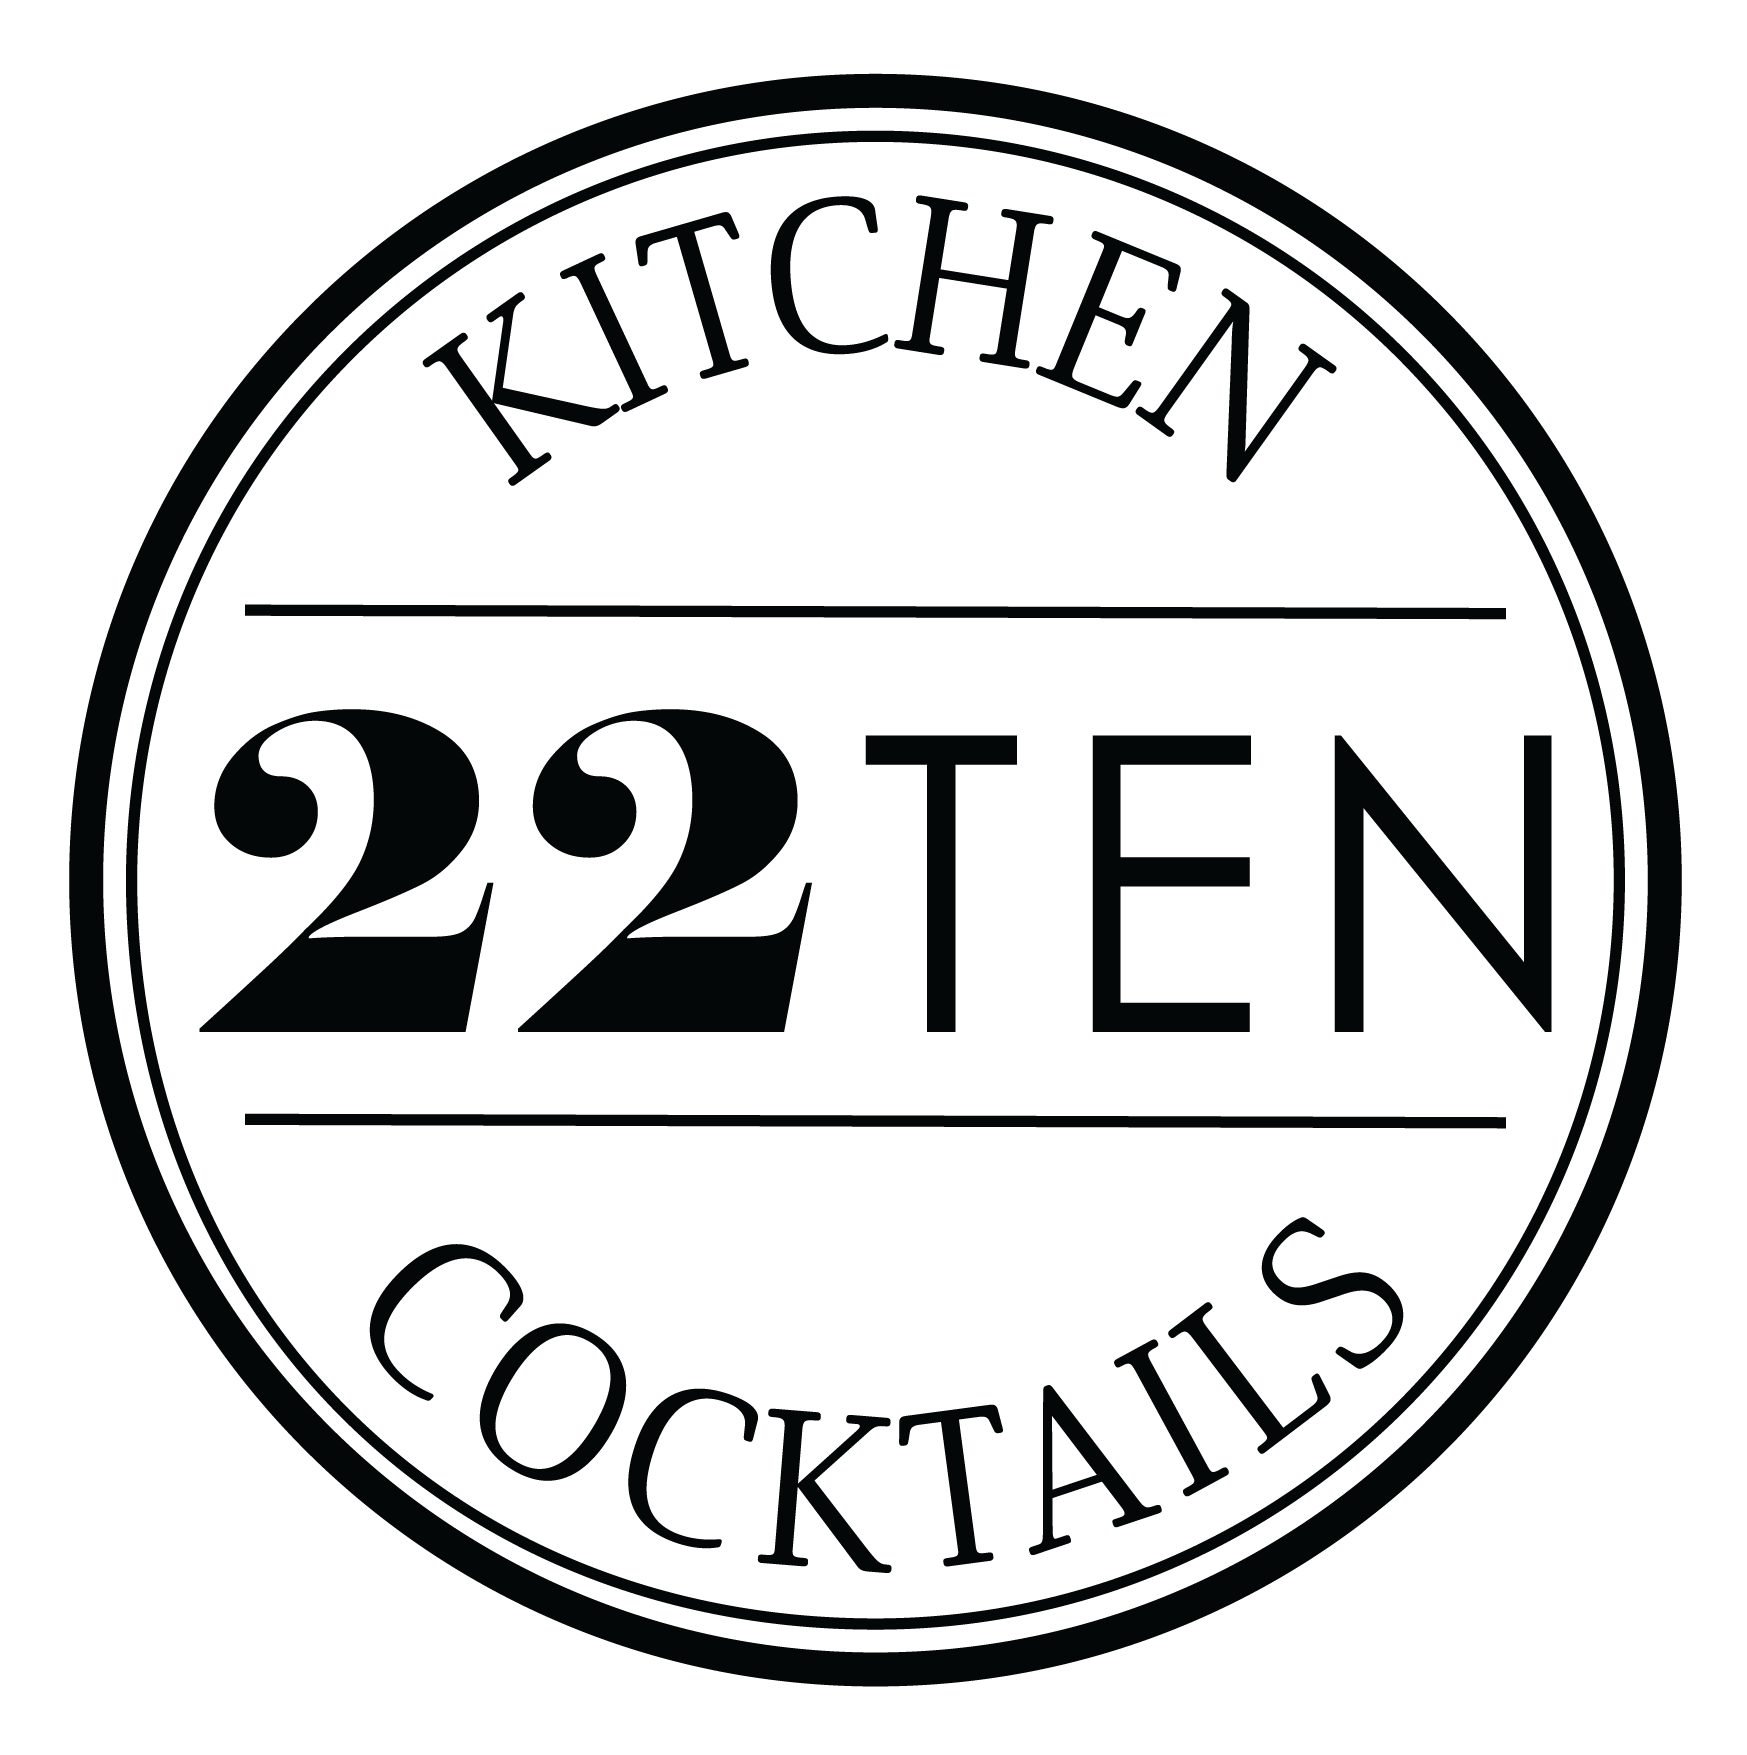 22 ten kitchen cocktails careers sioux falls sd Private Chef Resume